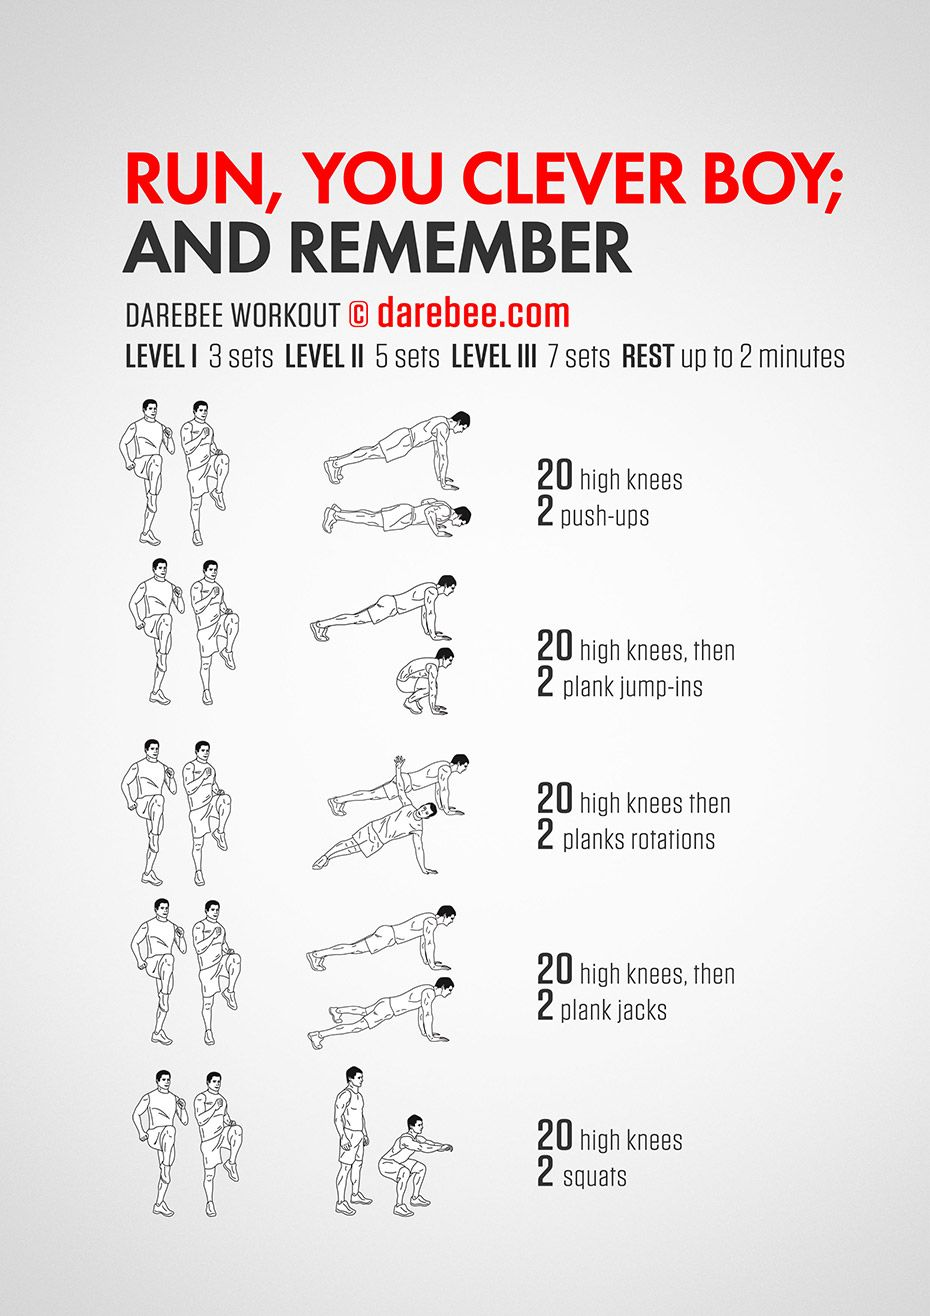 Run, you clever boy Workout | Posted By: AdvancedWeightLossTips.com ...